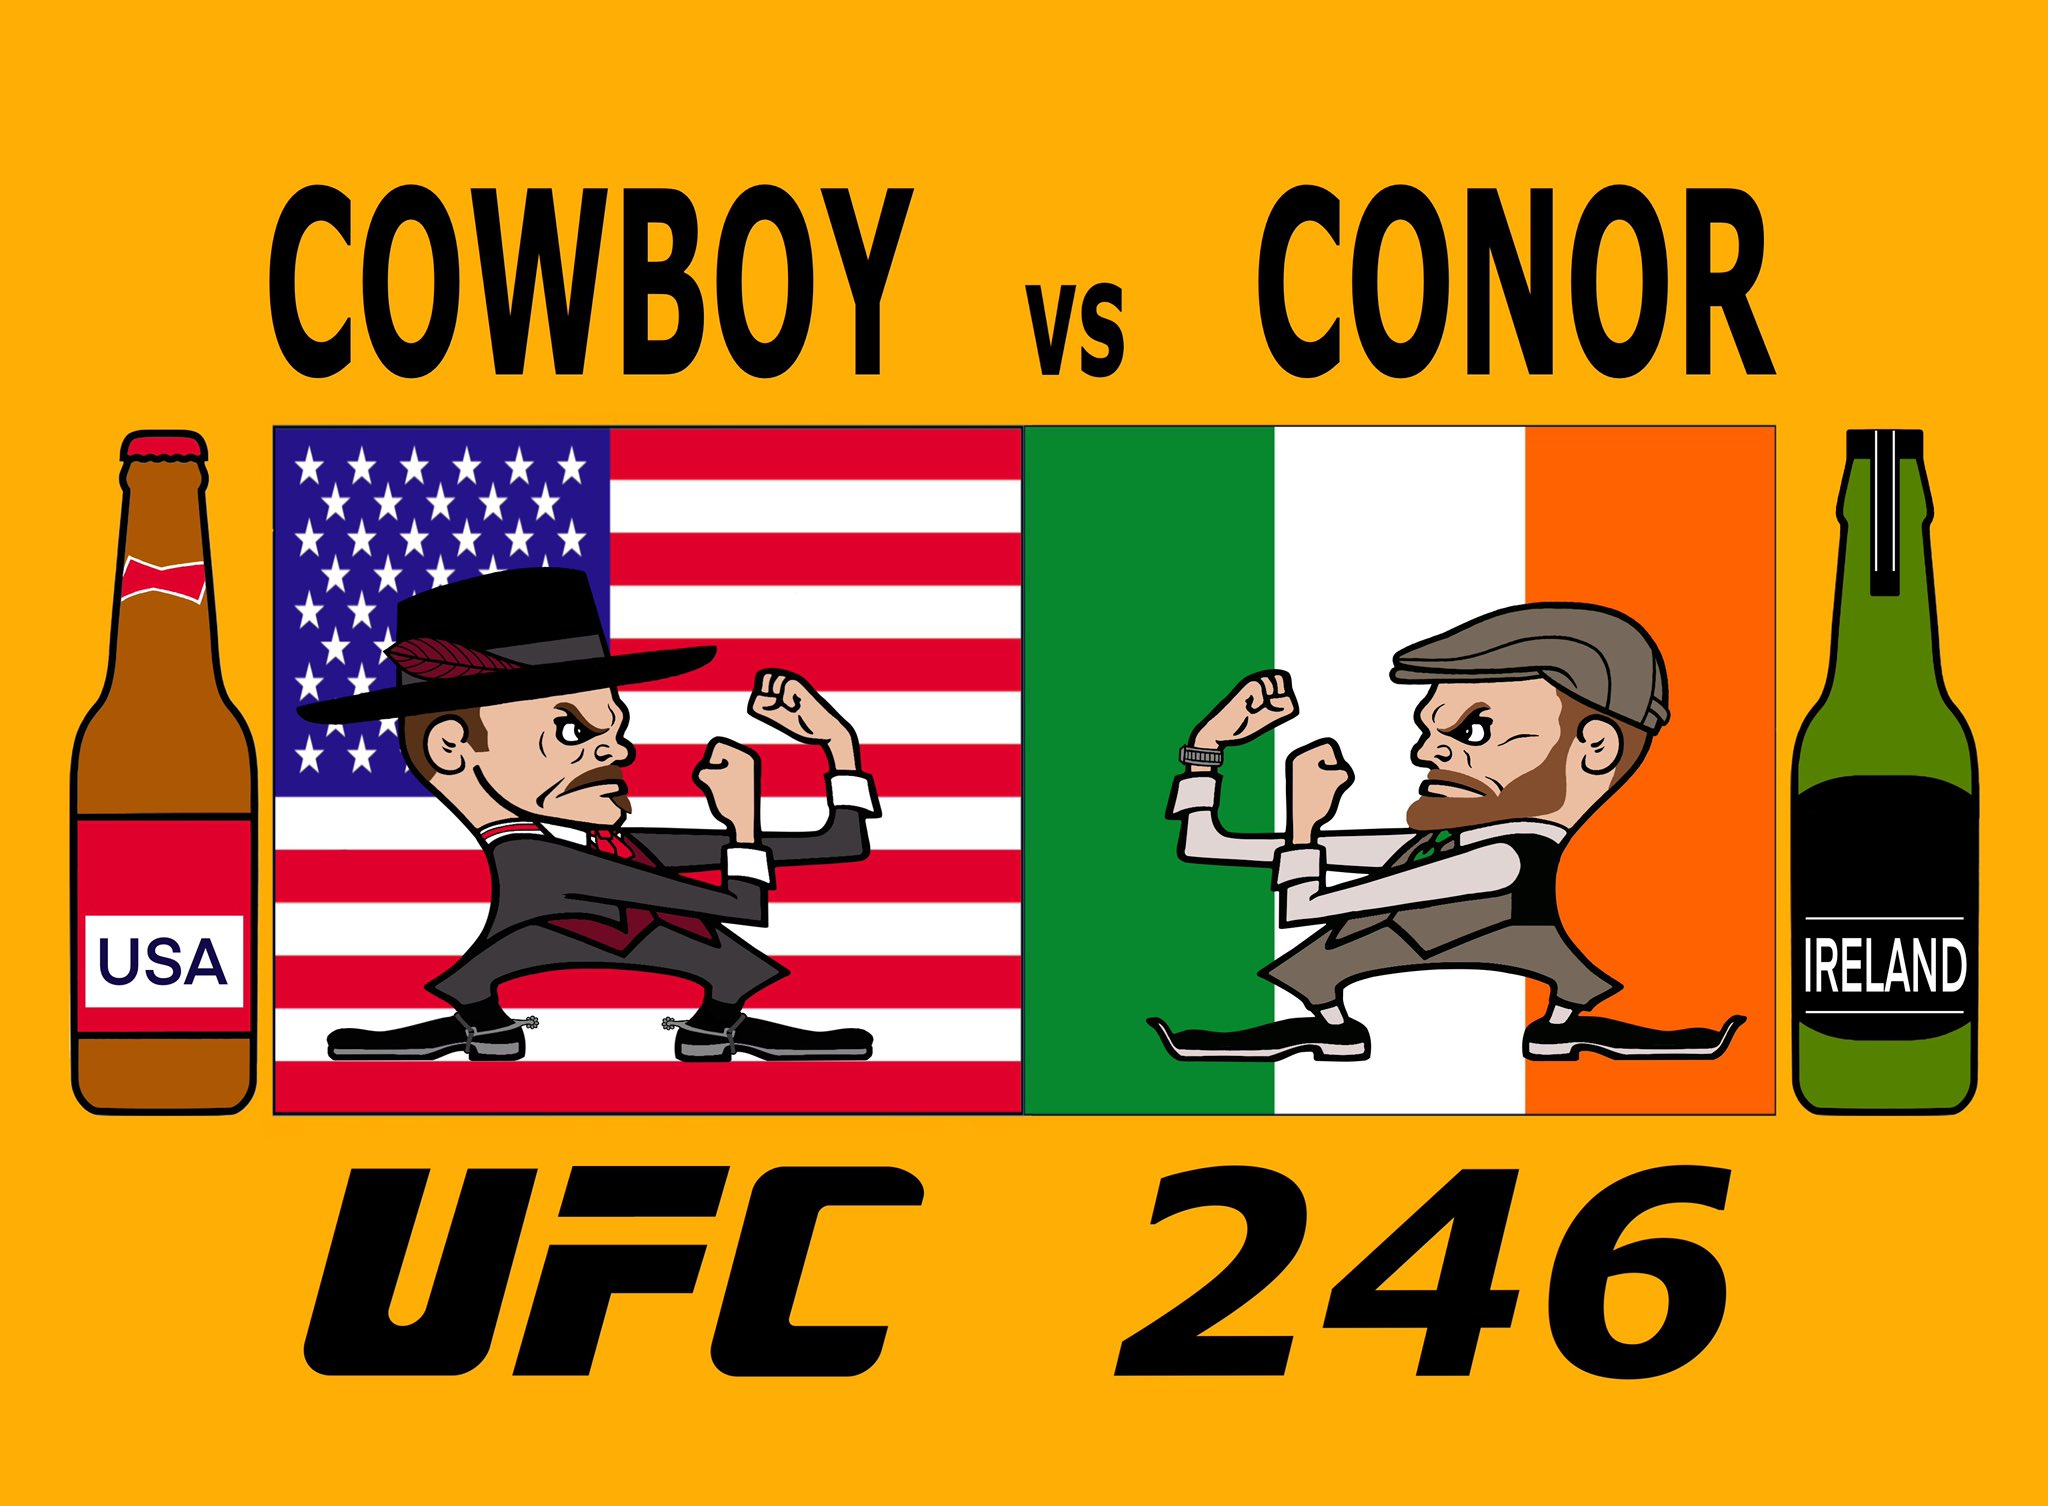 I am SO EXCITED for @Cowboycerrone vs @TheNotoriousMMA that I made my own @ufc promo poster for it.  It all started with a nod to the Notre Dame leprechaun. 🙃  #UFC #UFC246 #CowboyVsConor https://t.co/To8GAVgNZG